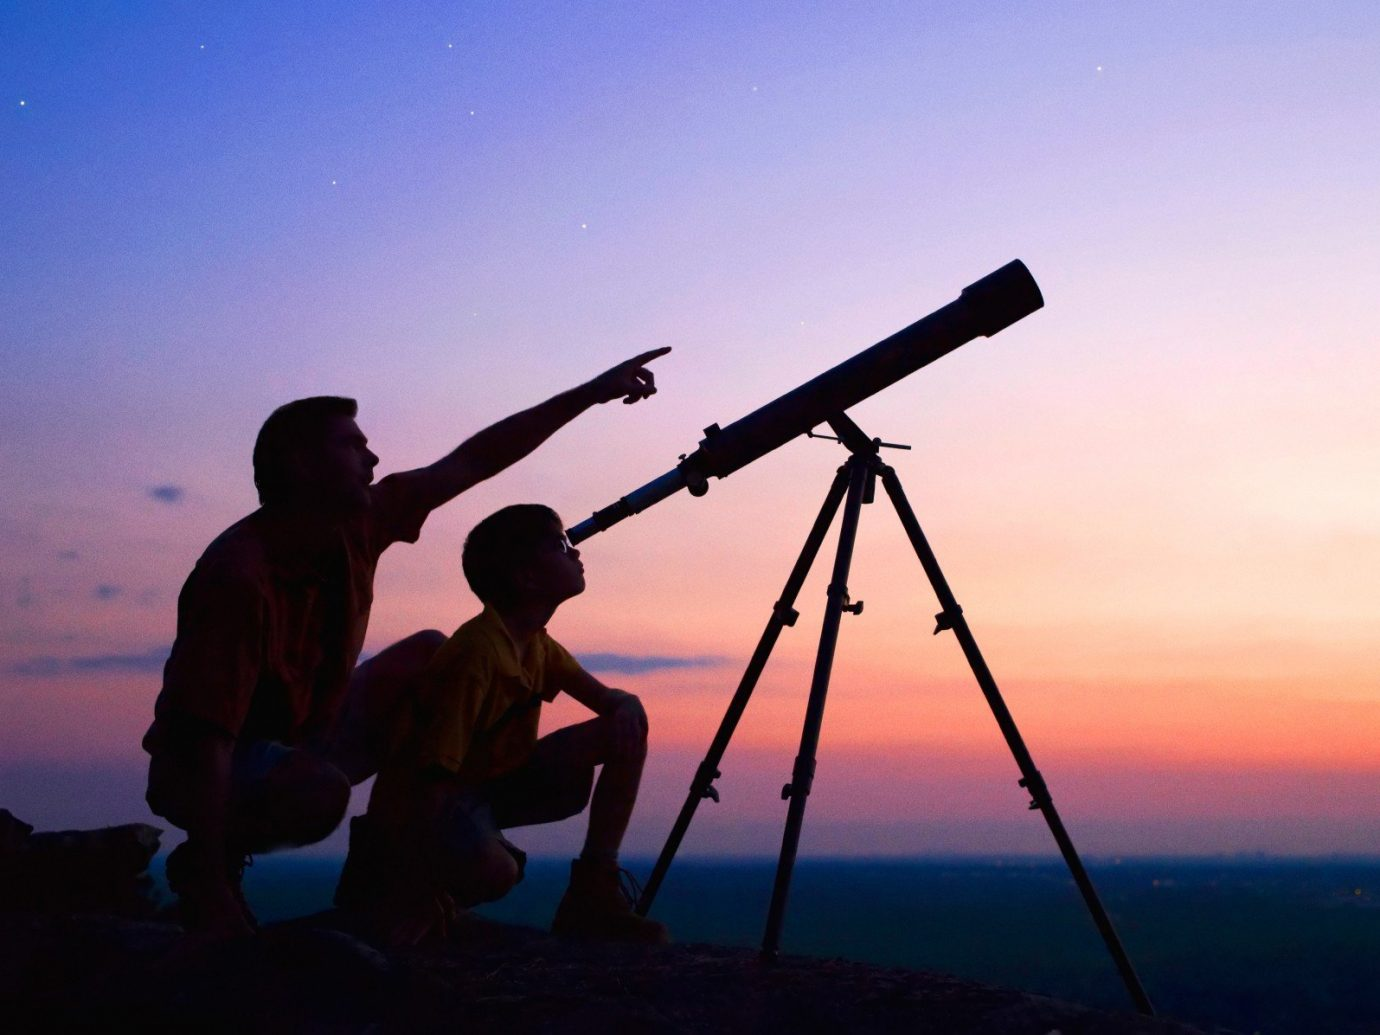 Budget sky outdoor telescope atmosphere of earth silhouette Sunset Sun Sea sunrise dusk distance